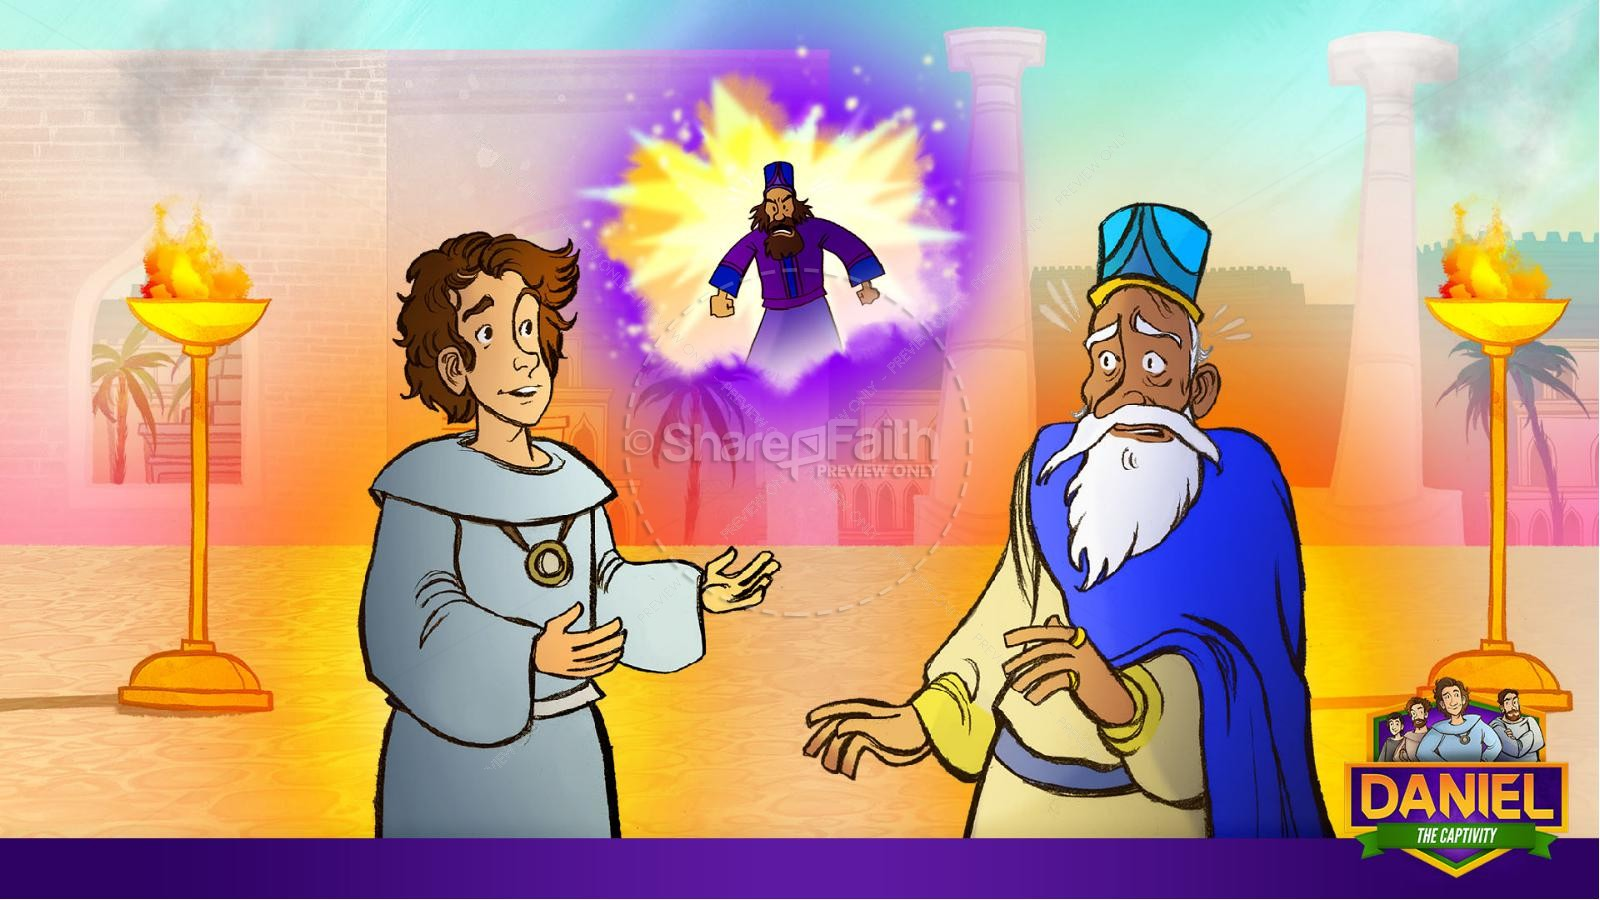 Daniel 1 The Captivity Kids Bible Story | slide 22